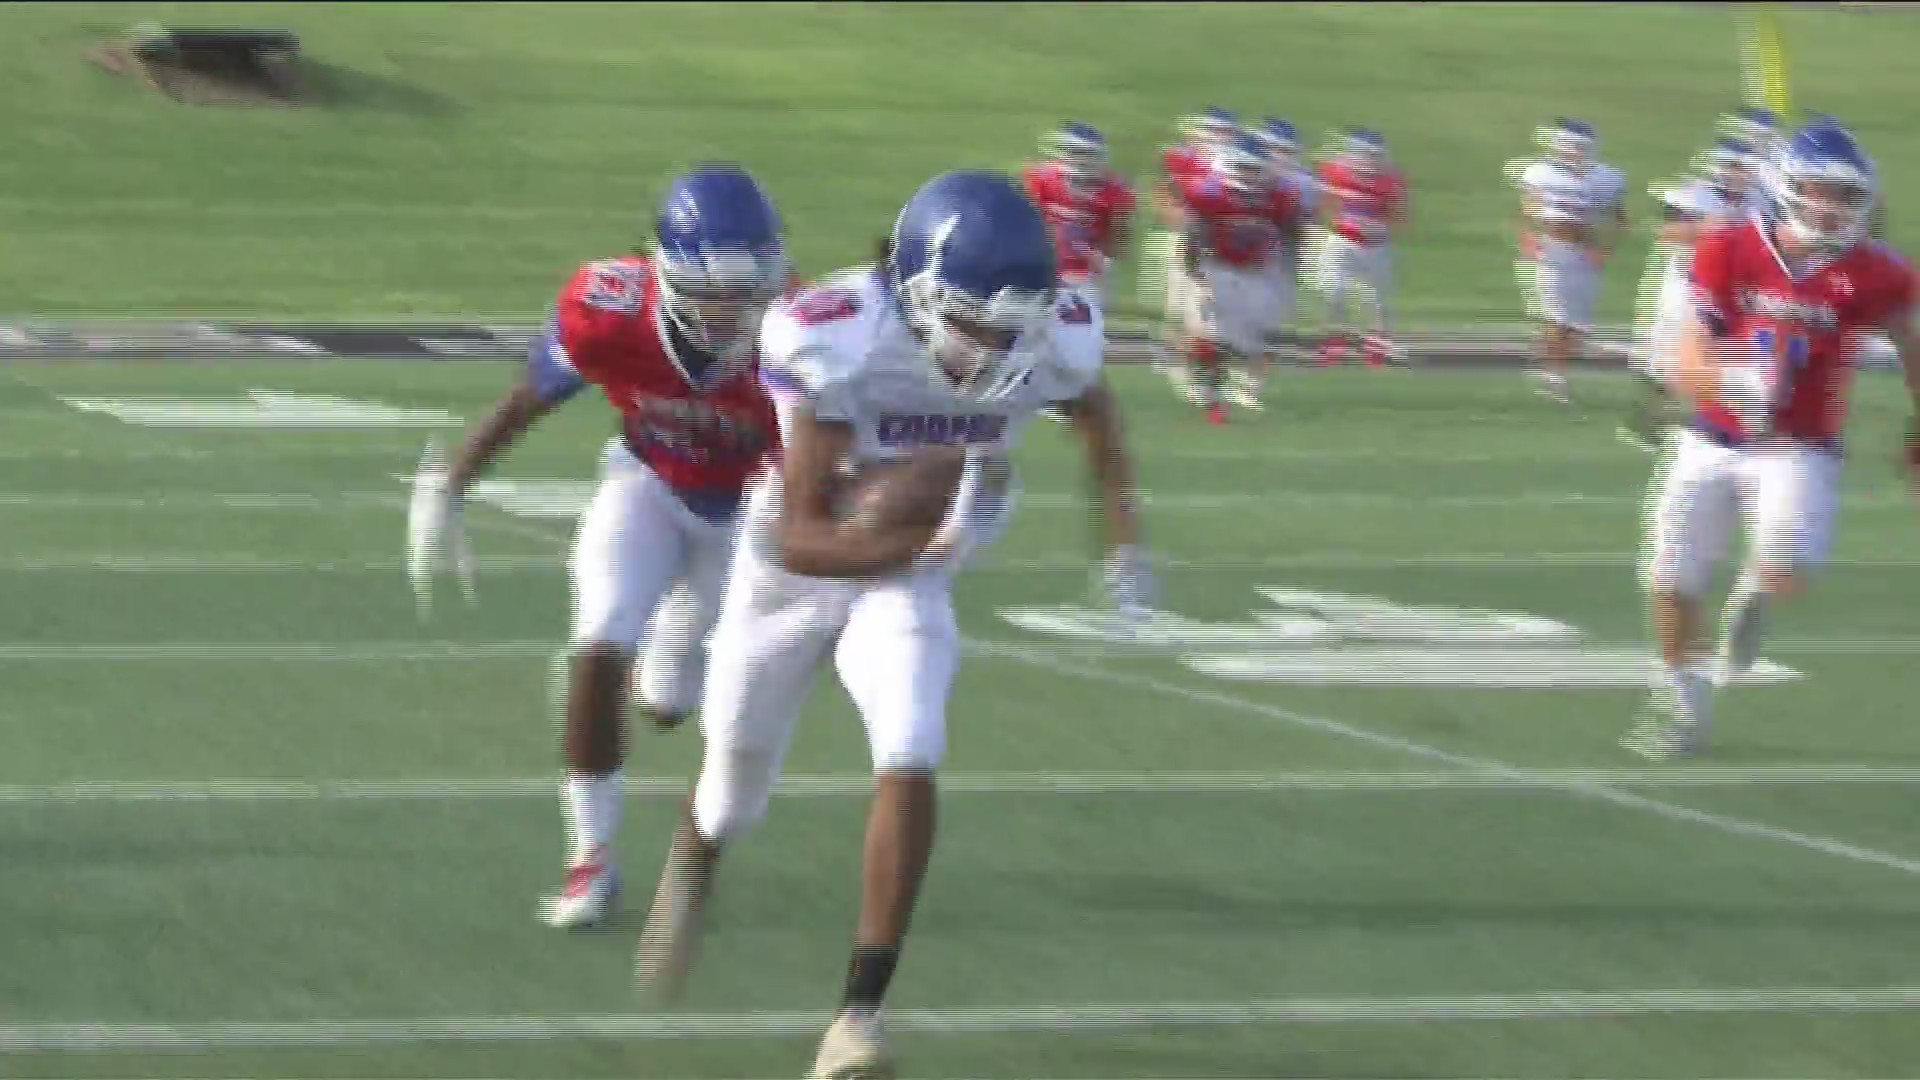 Cooper finishes Spring with Red and Blue Game